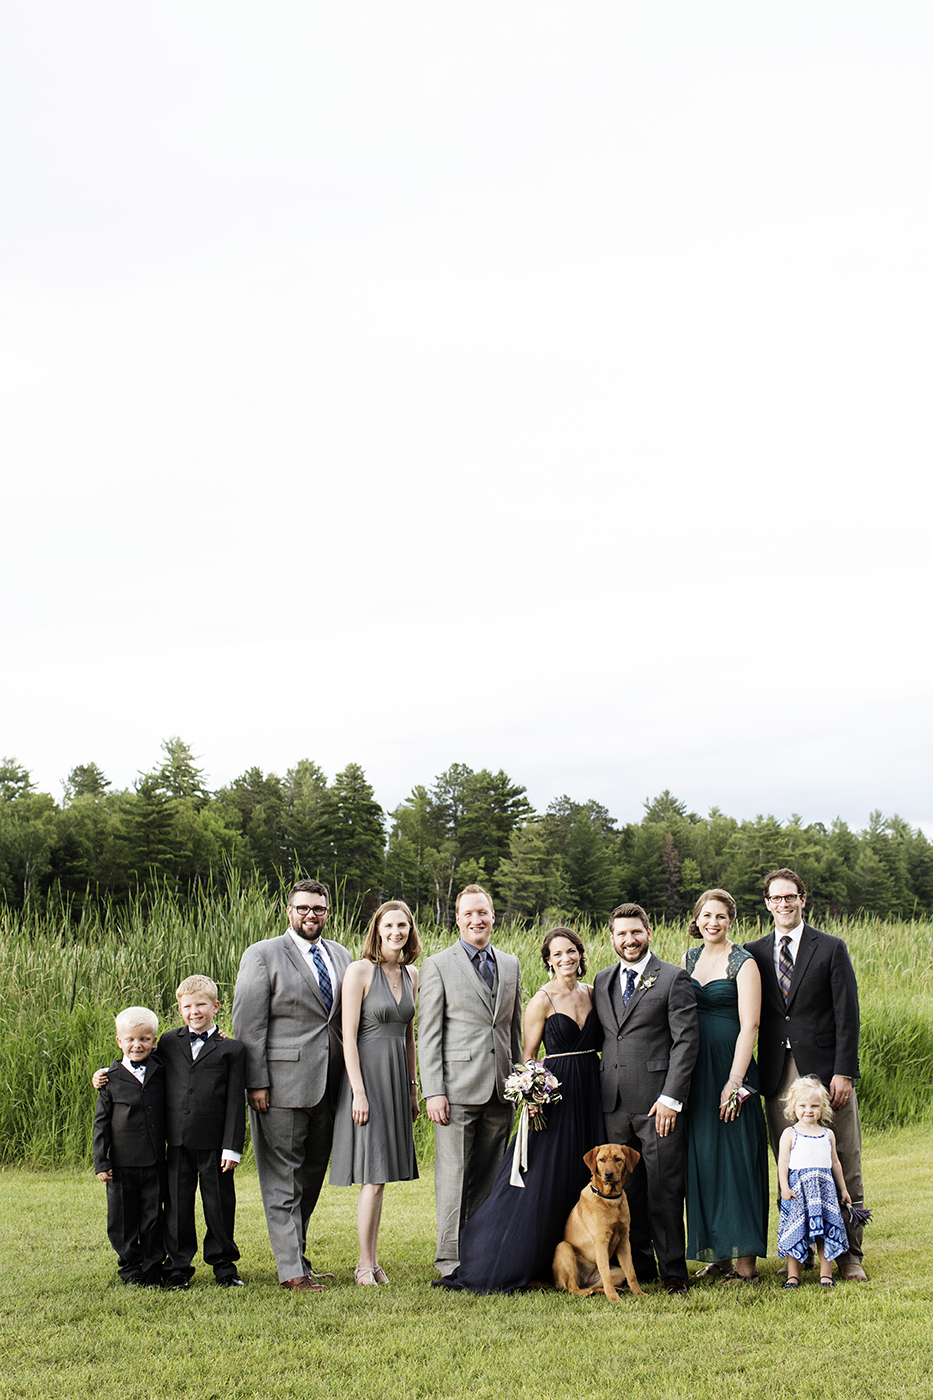 Northern MN Wedding | Minneapolis Wedding Photographer | Photos by Photogen Inc. | Eliesa Johnson | Based in Minneapolis, Minnesota